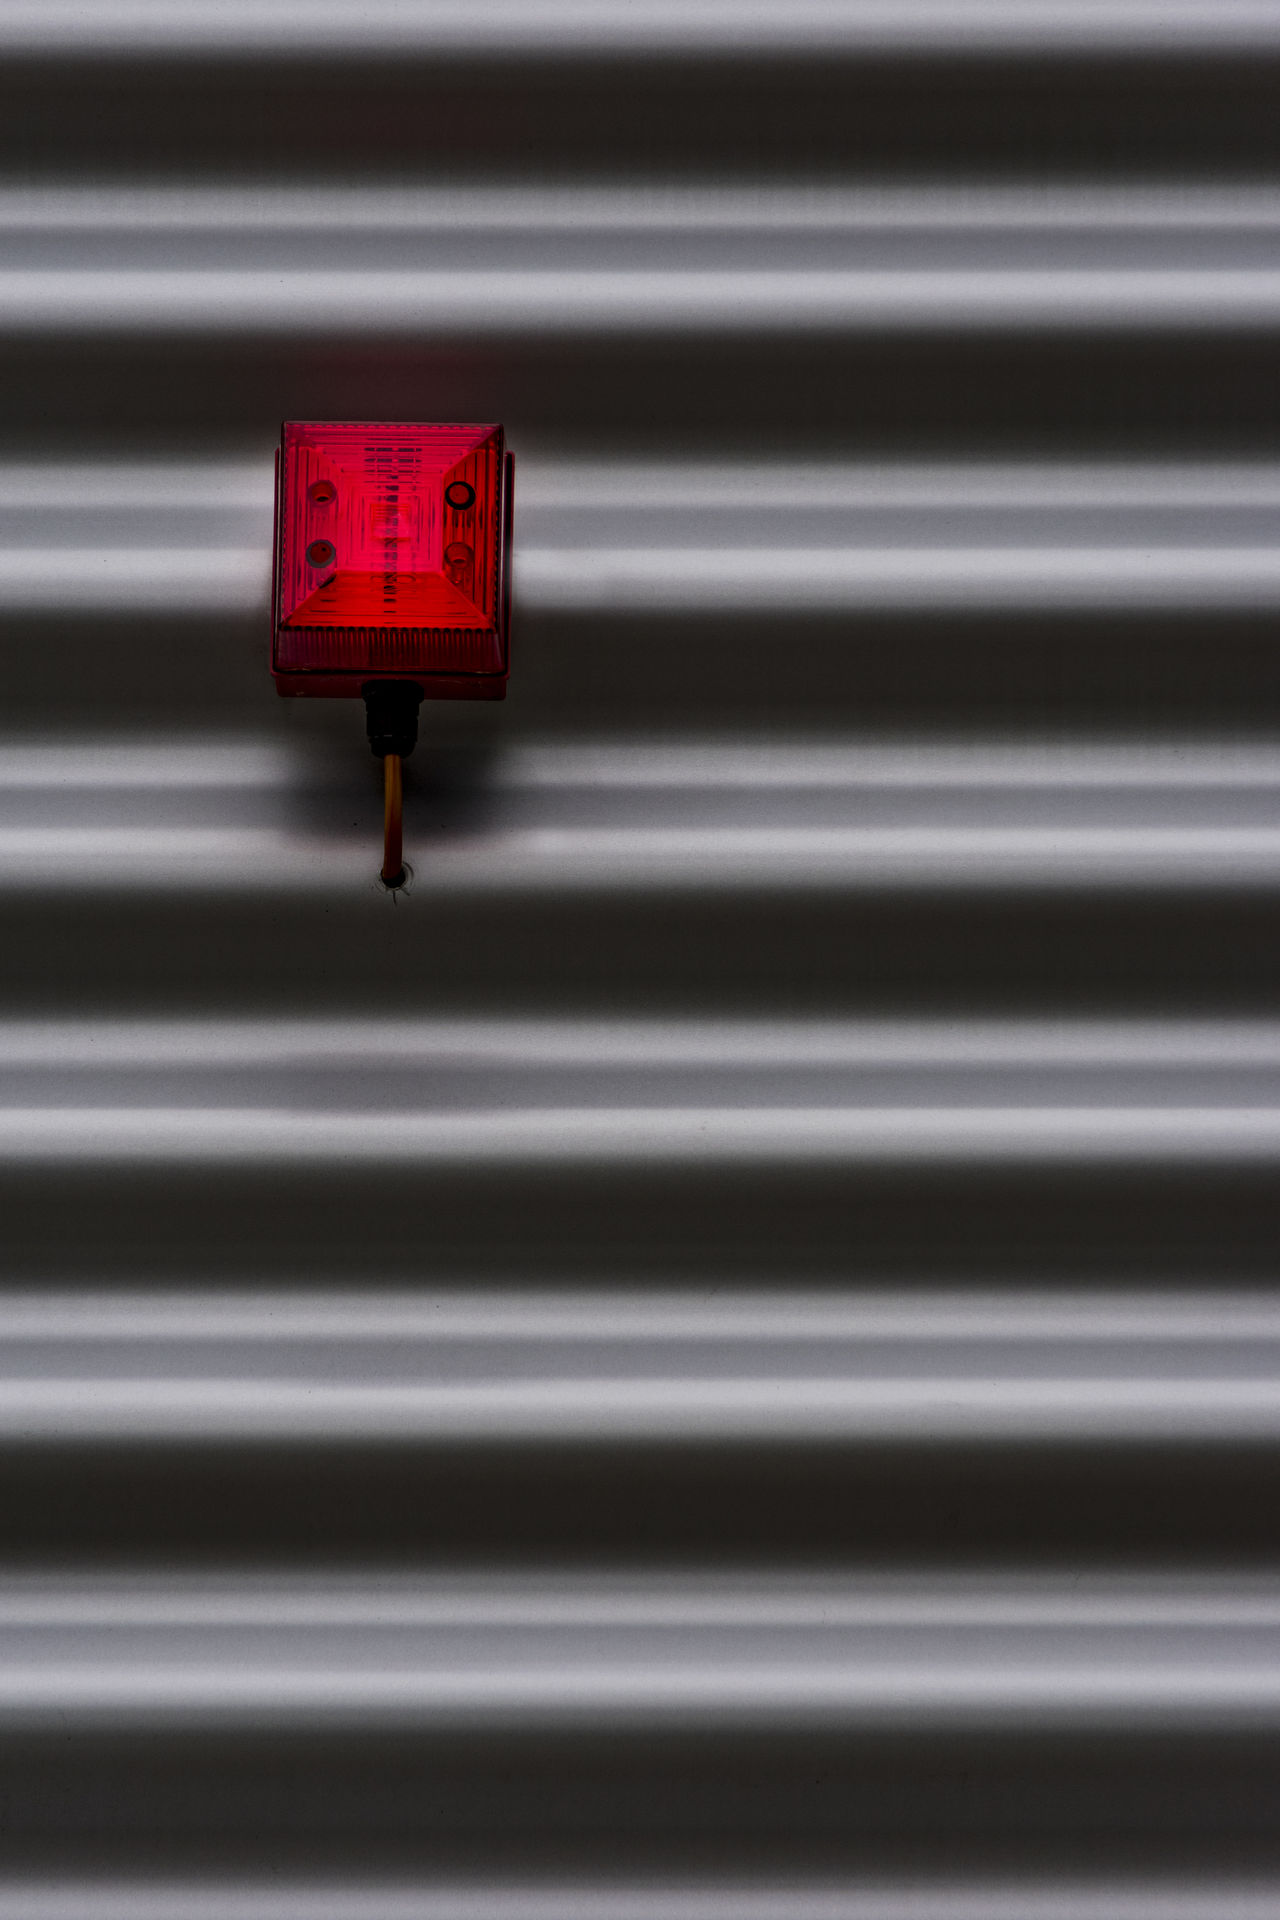 corrugated iron Black Close-up Corrugated Iron Day Fire Alarm Hamburg No People Outdoors Pattern Red Red Light Texture